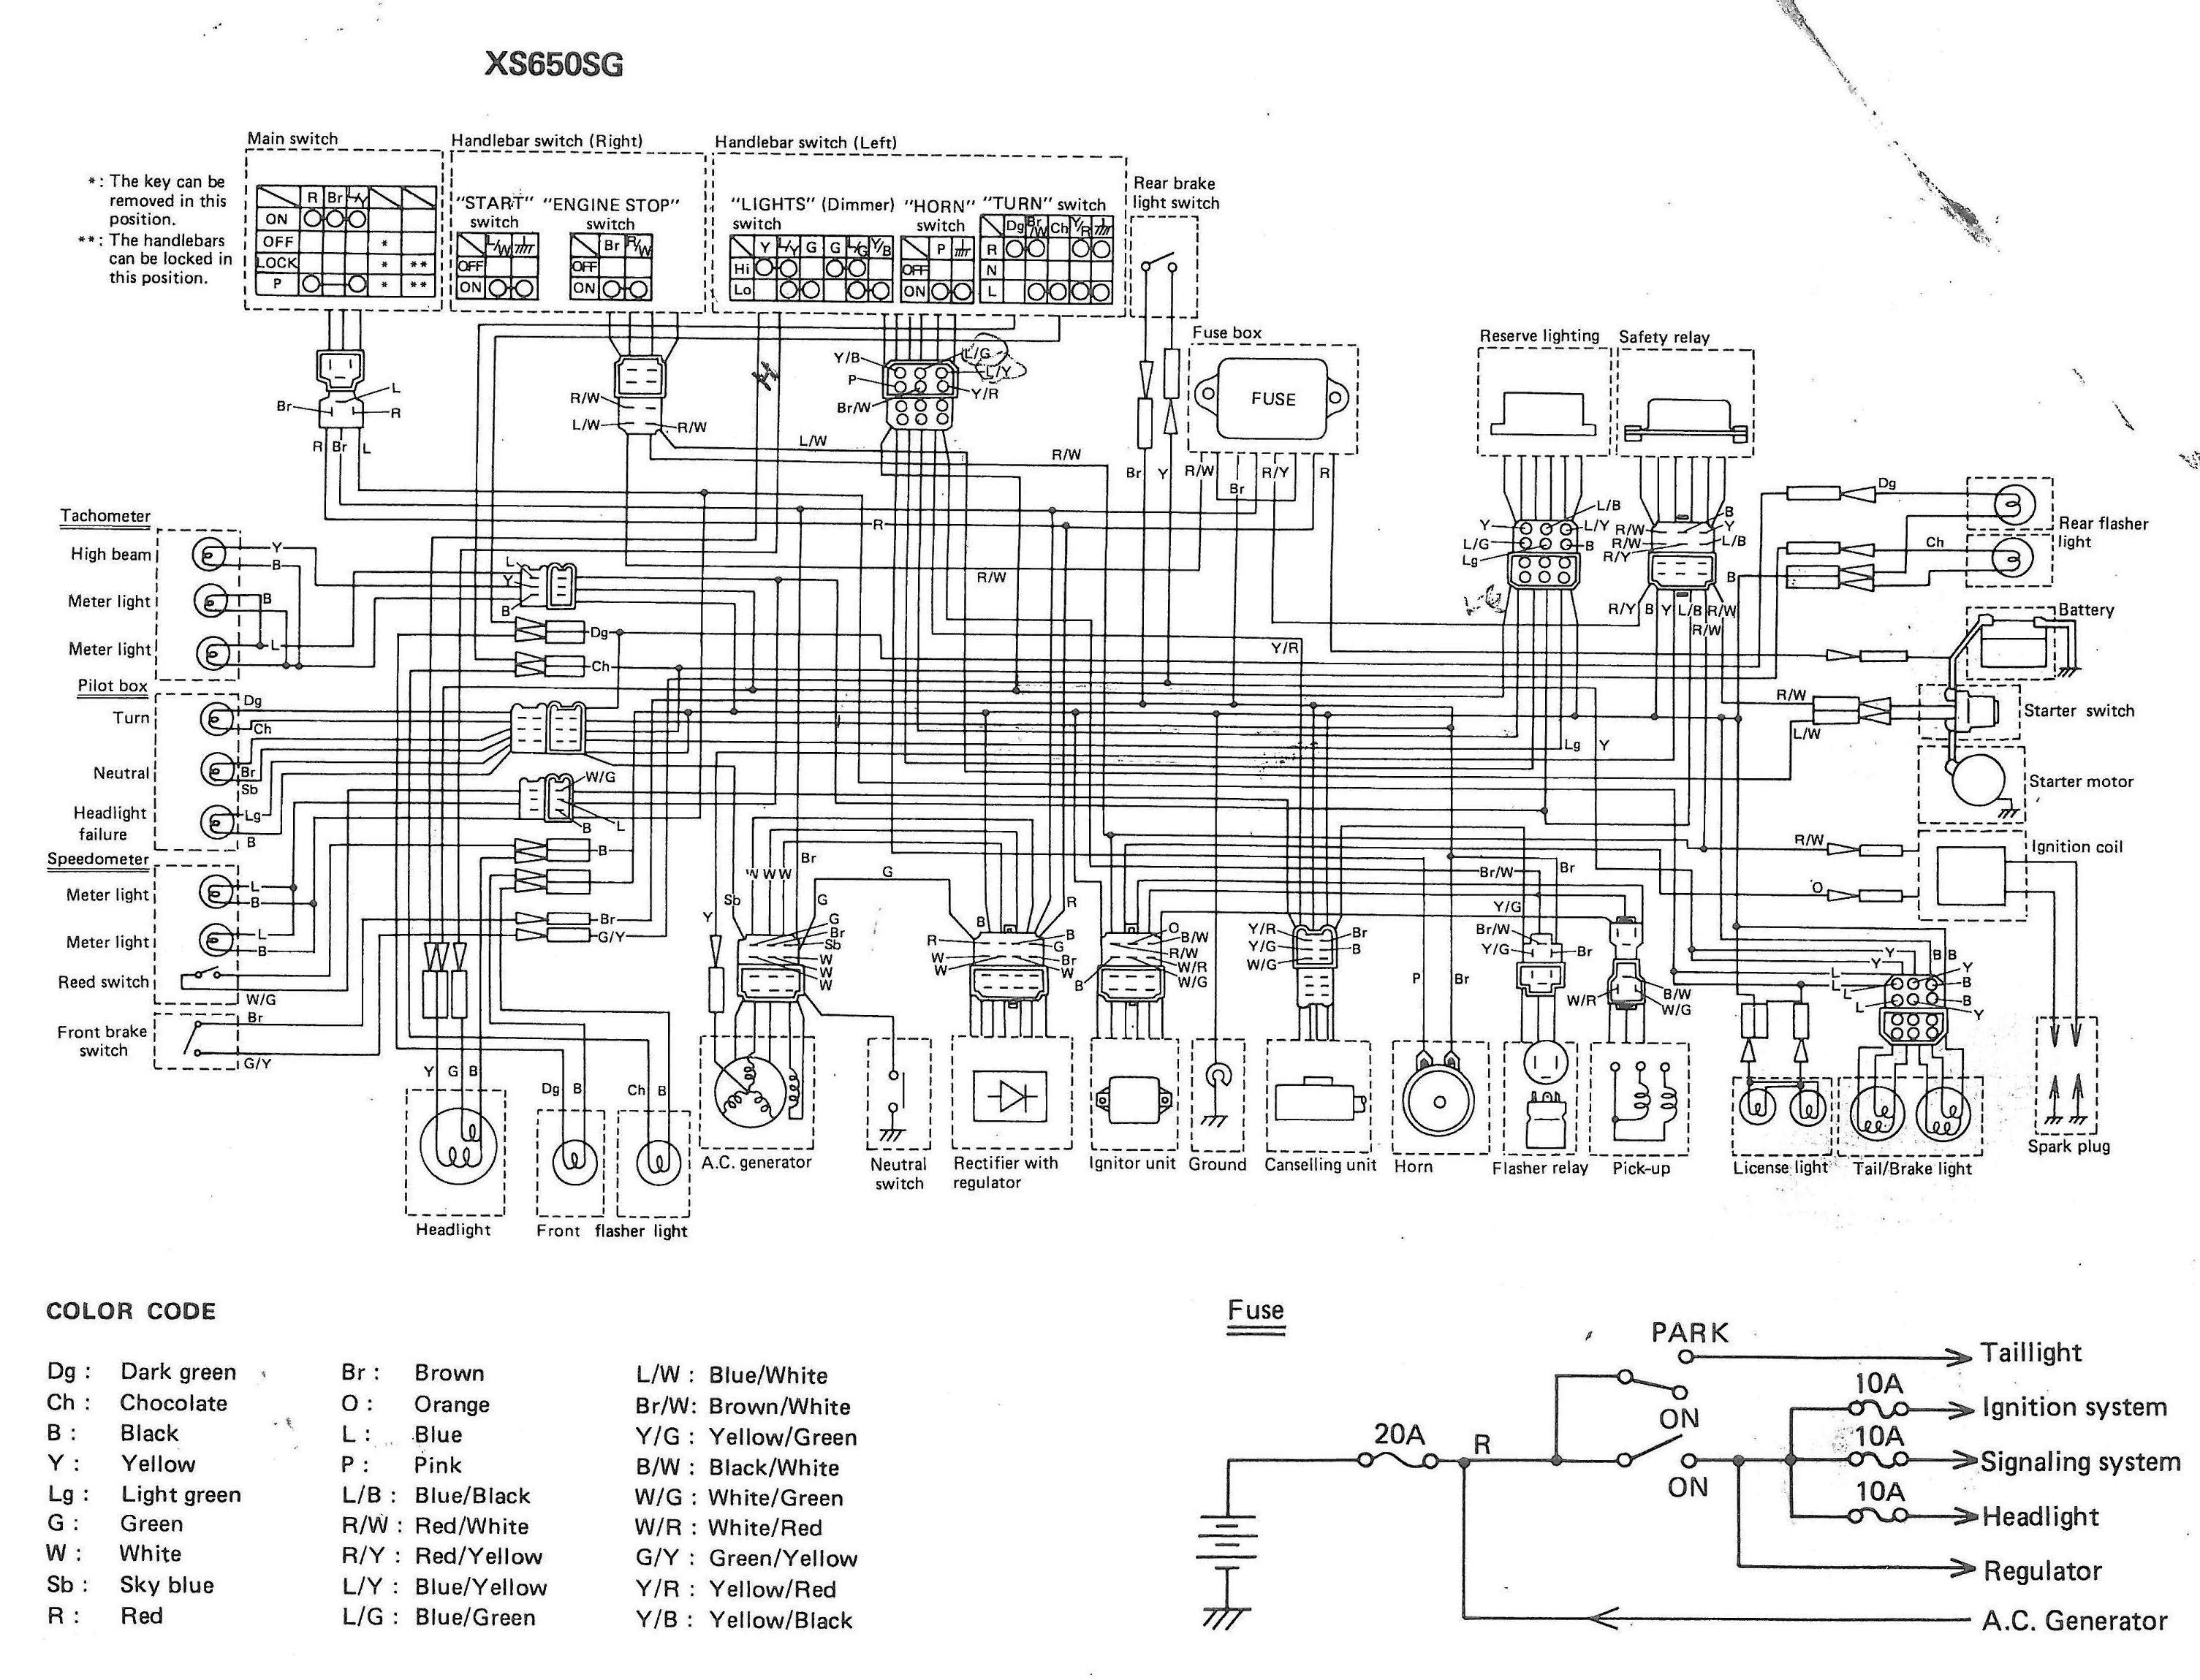 Xs 400 Special Wiring Diagram Trusted Diagrams Yamaha Xt600e 81 Xs400 Smart U2022 Motorcycle